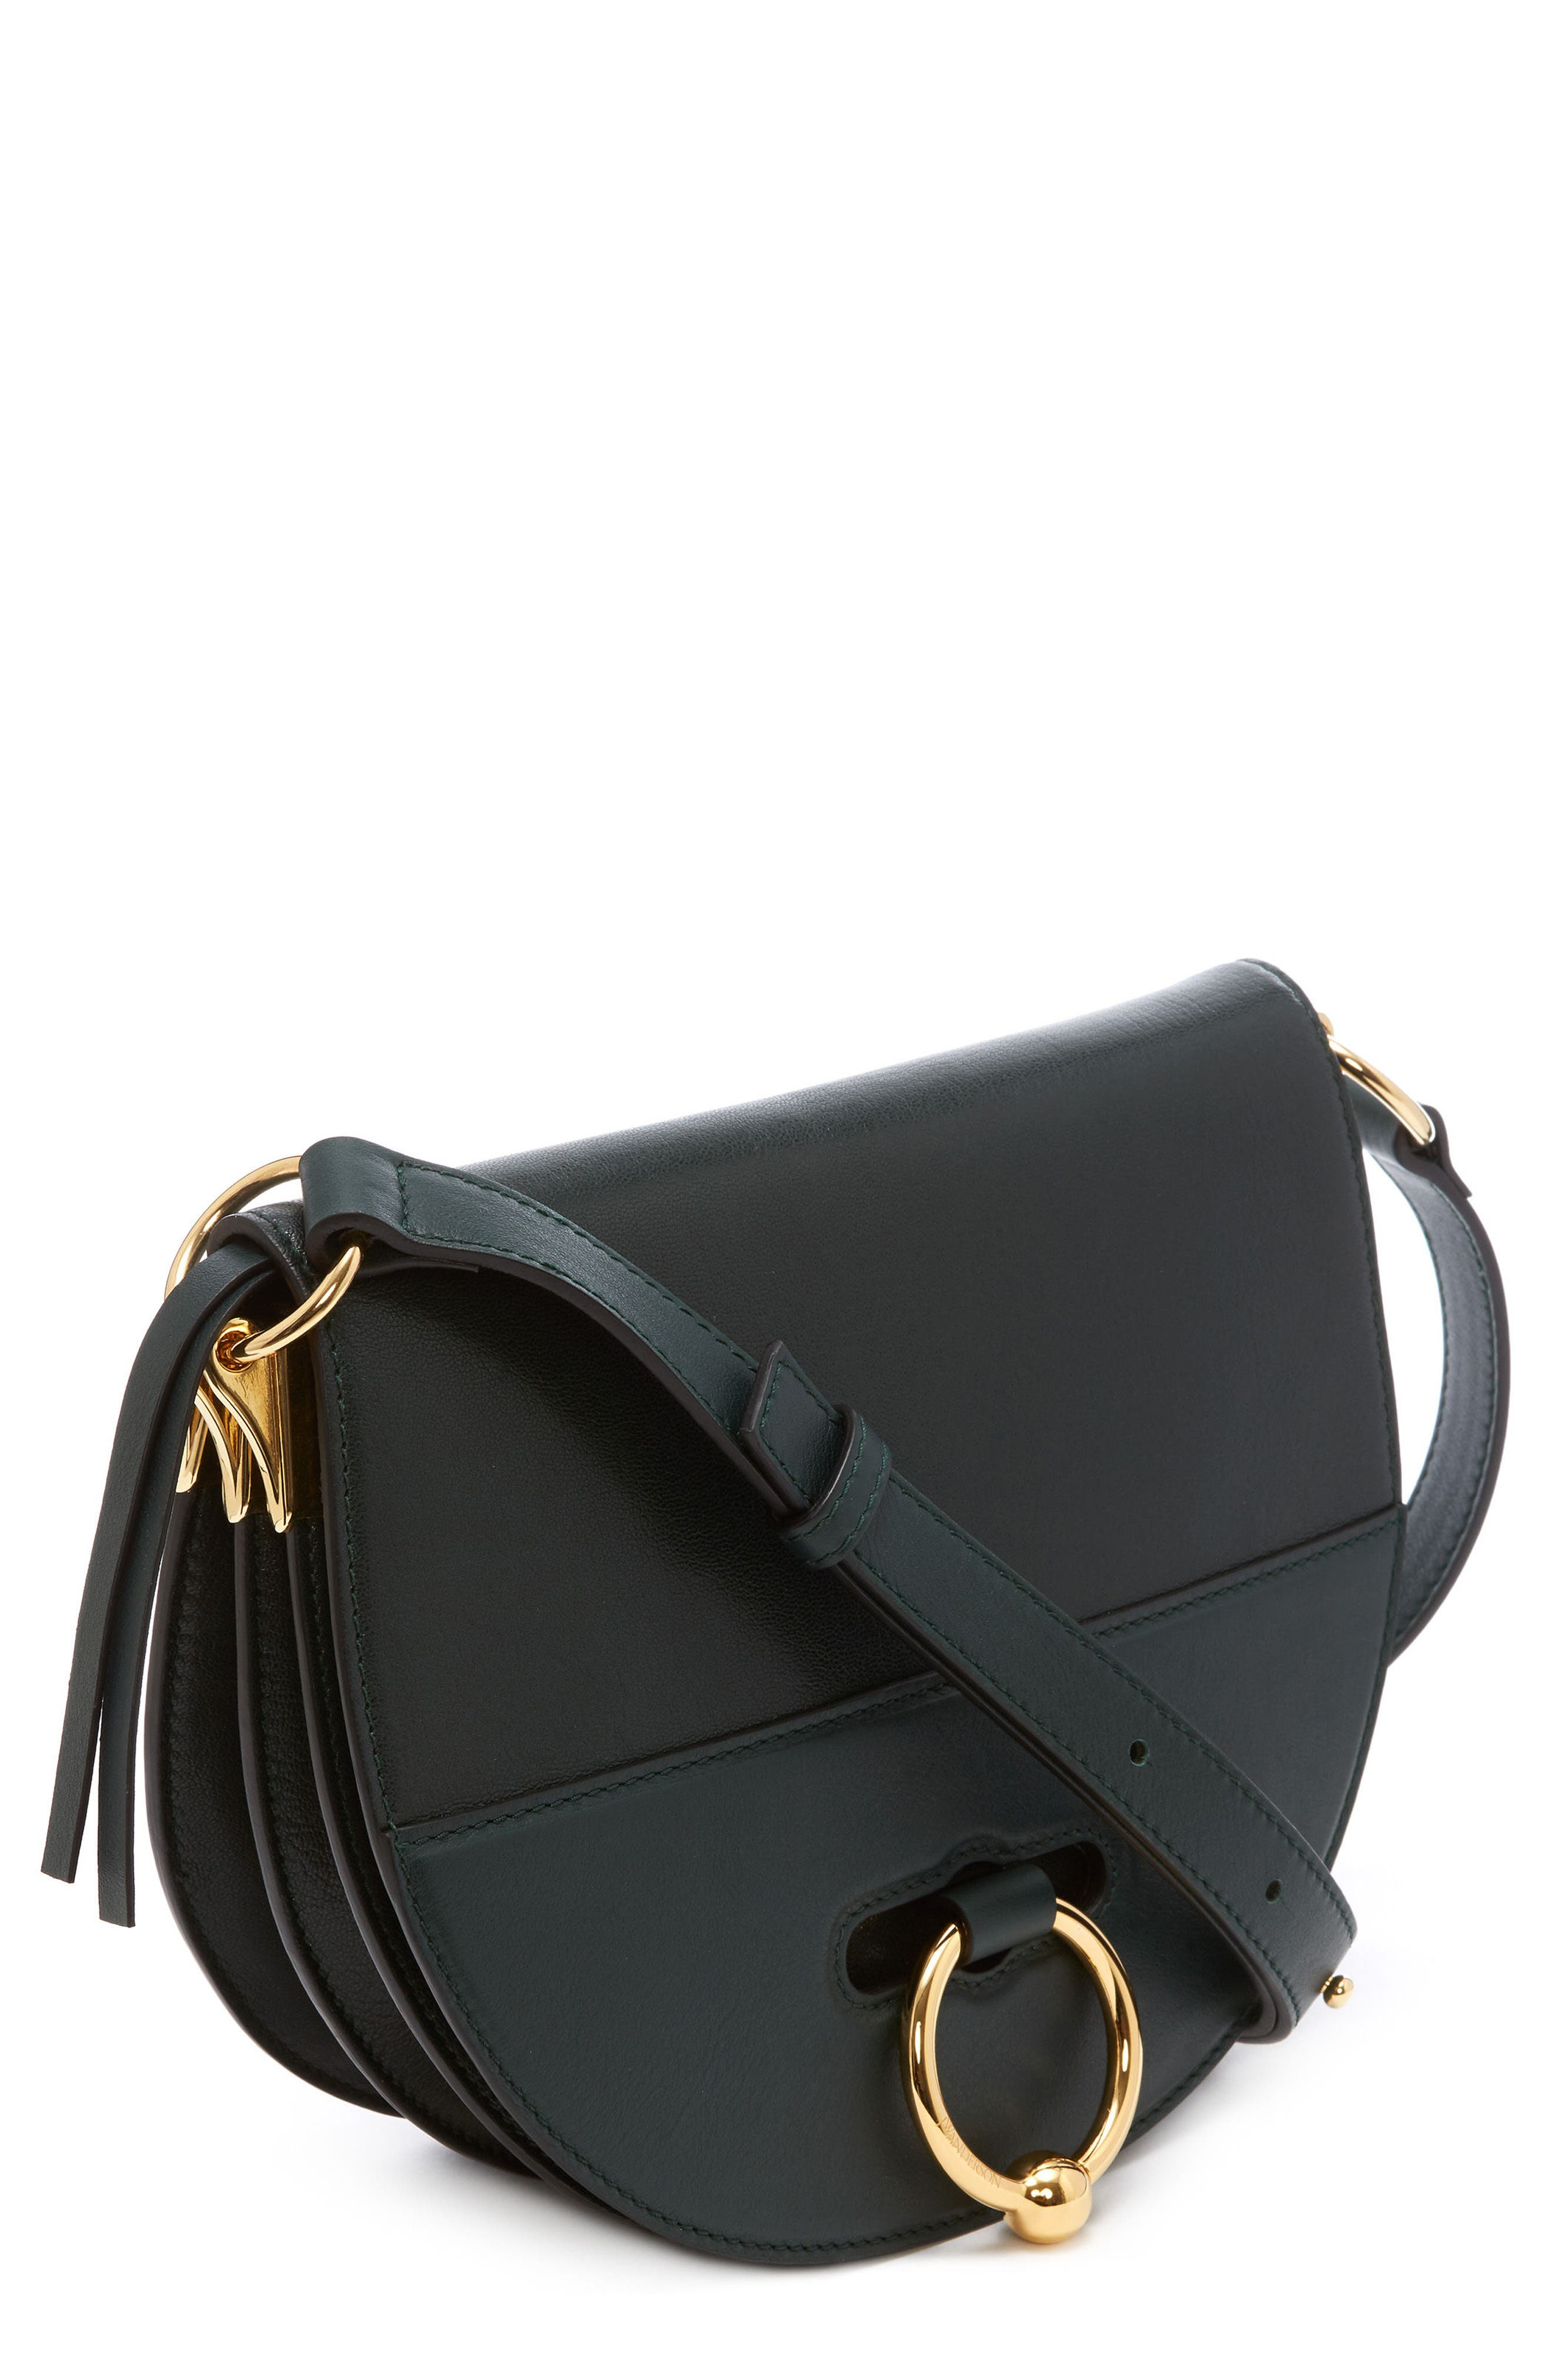 J.W.ANDERSON Latch Crossbody Bag,                             Main thumbnail 1, color,                             Forest Green